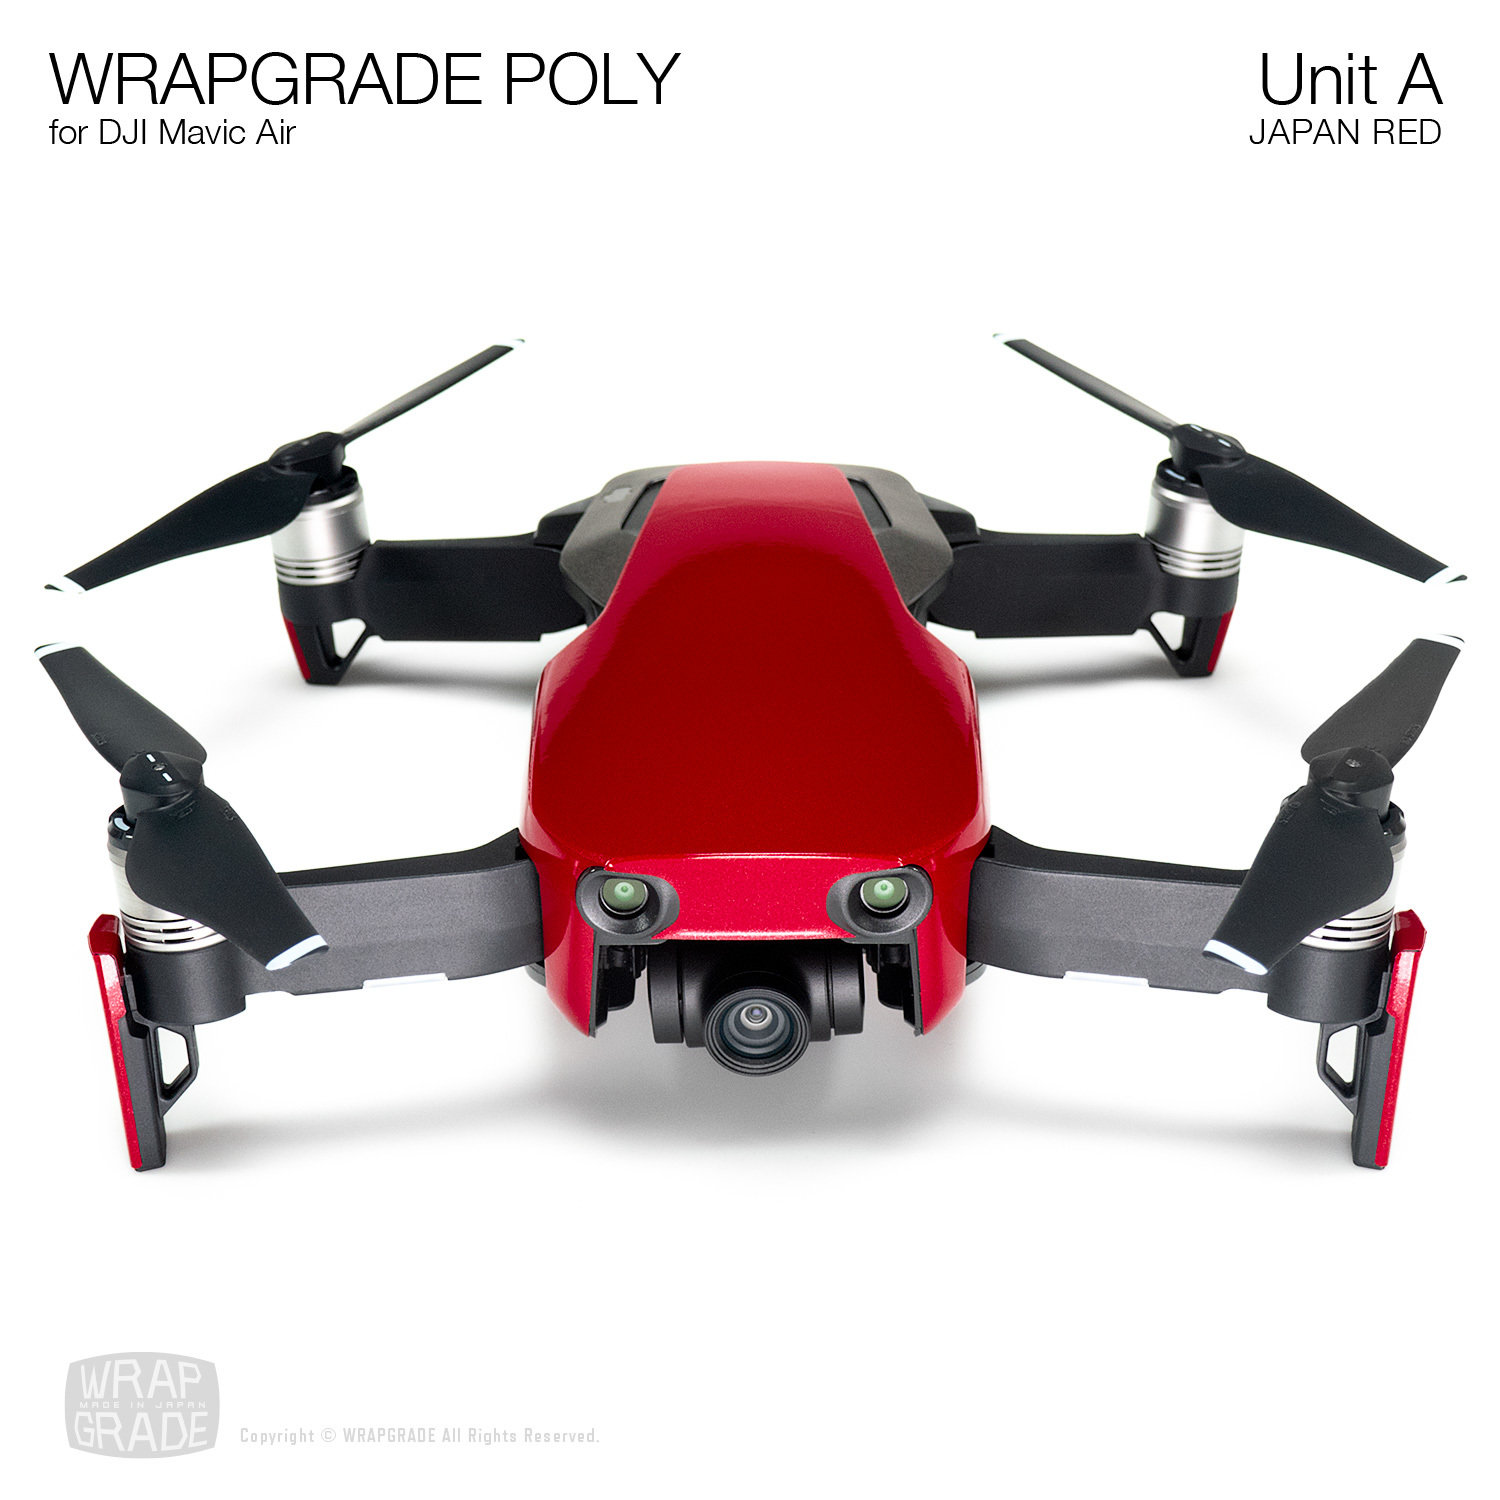 Wrapgrade Poly Skin for DJI Mavic Air | Unit A (JAPAN RED)